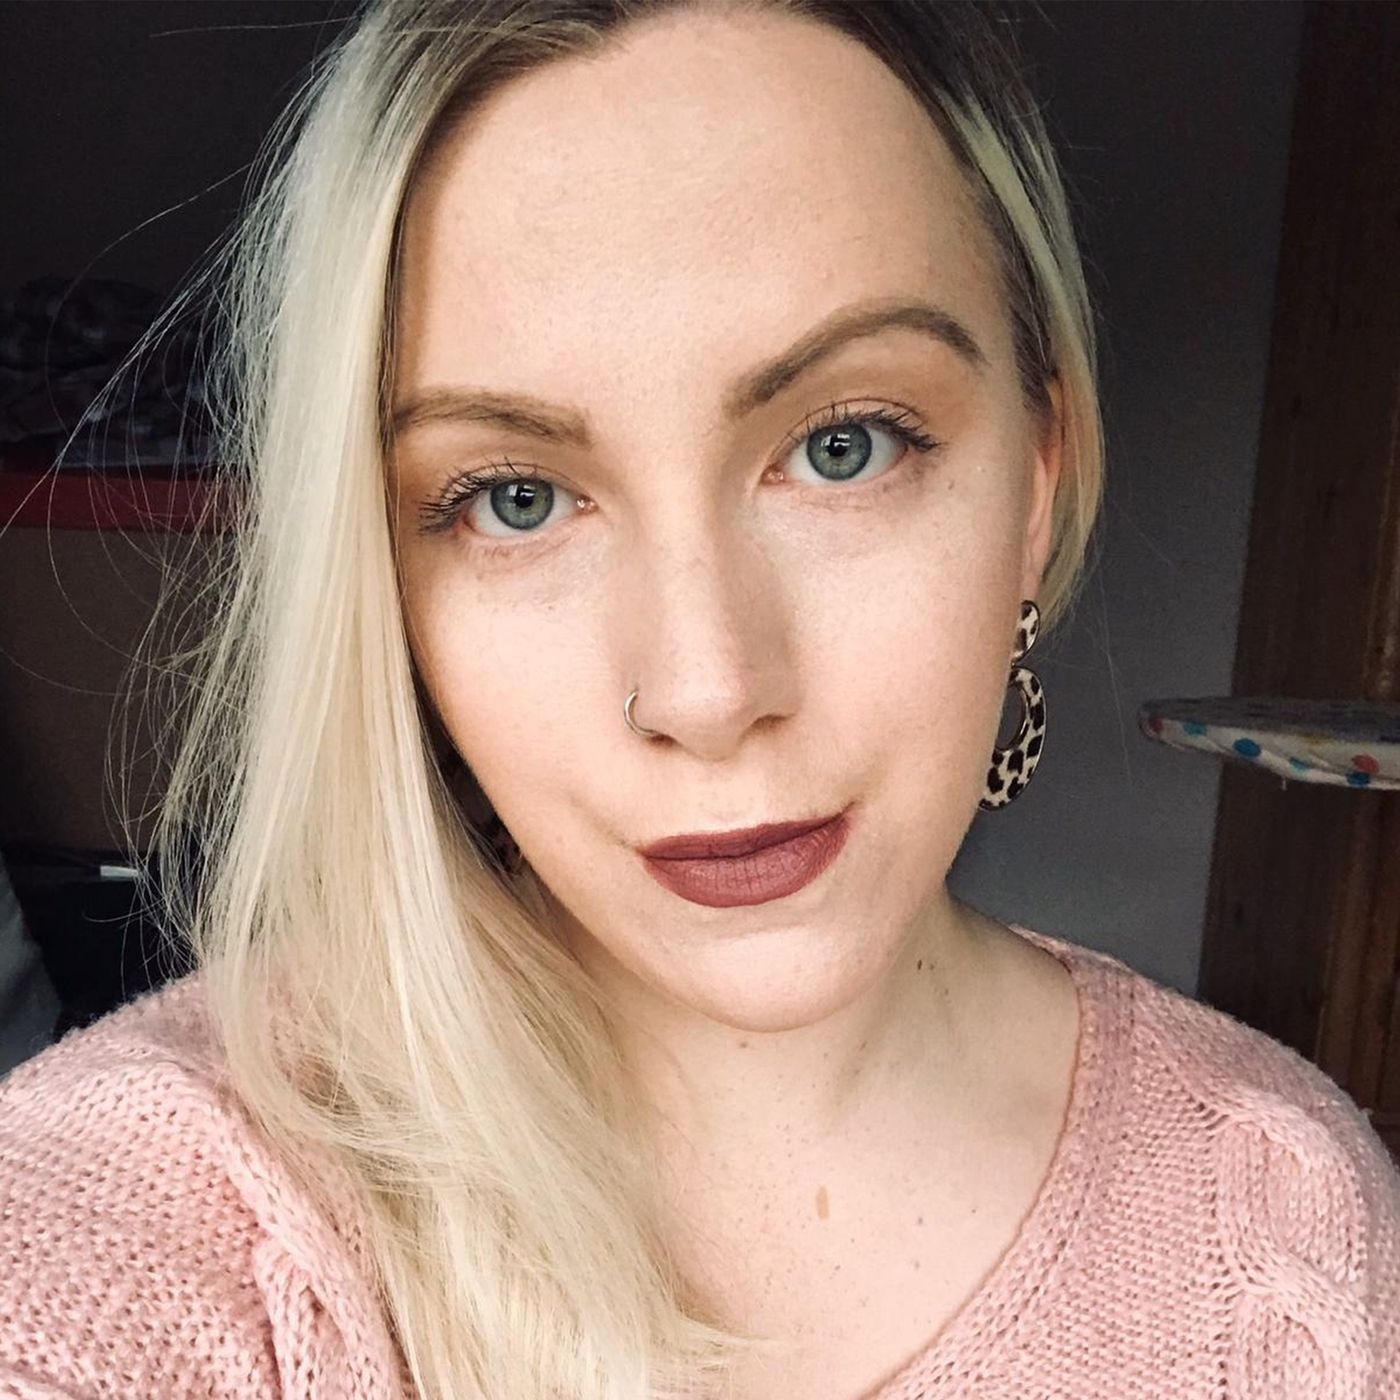 No Really, I'm Fine - Gemma Sherlock opens up on her battles with suicide, anxiety and depression and how she has tackled her mental health setbacks